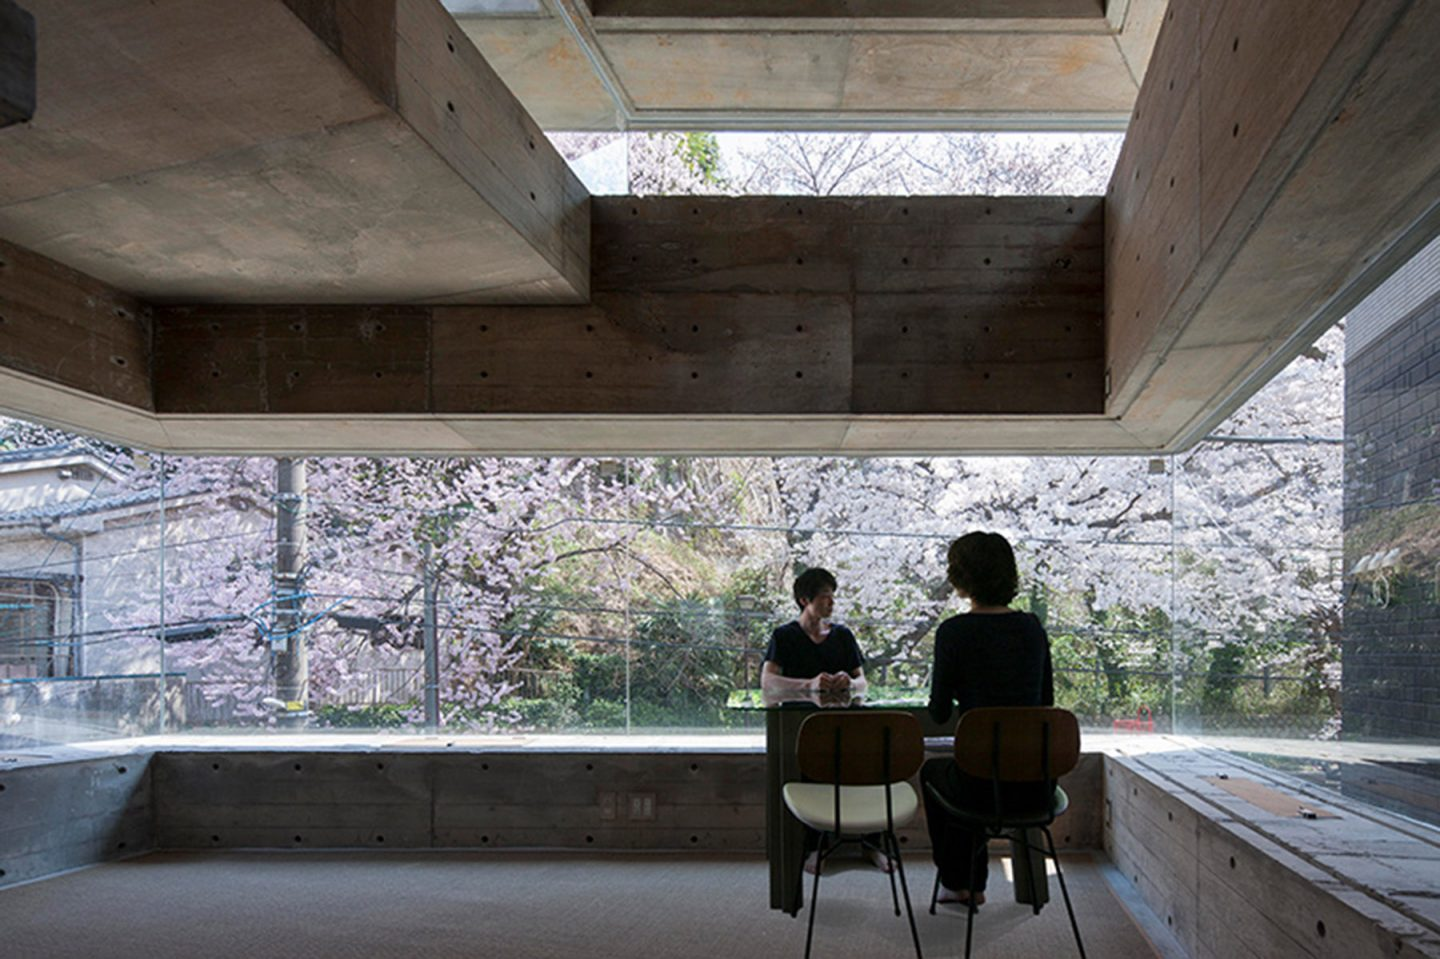 iGNANT-Architecture-Shinsuke-Fuji-Architects-Oriel-Window-House-Office-Japan-003